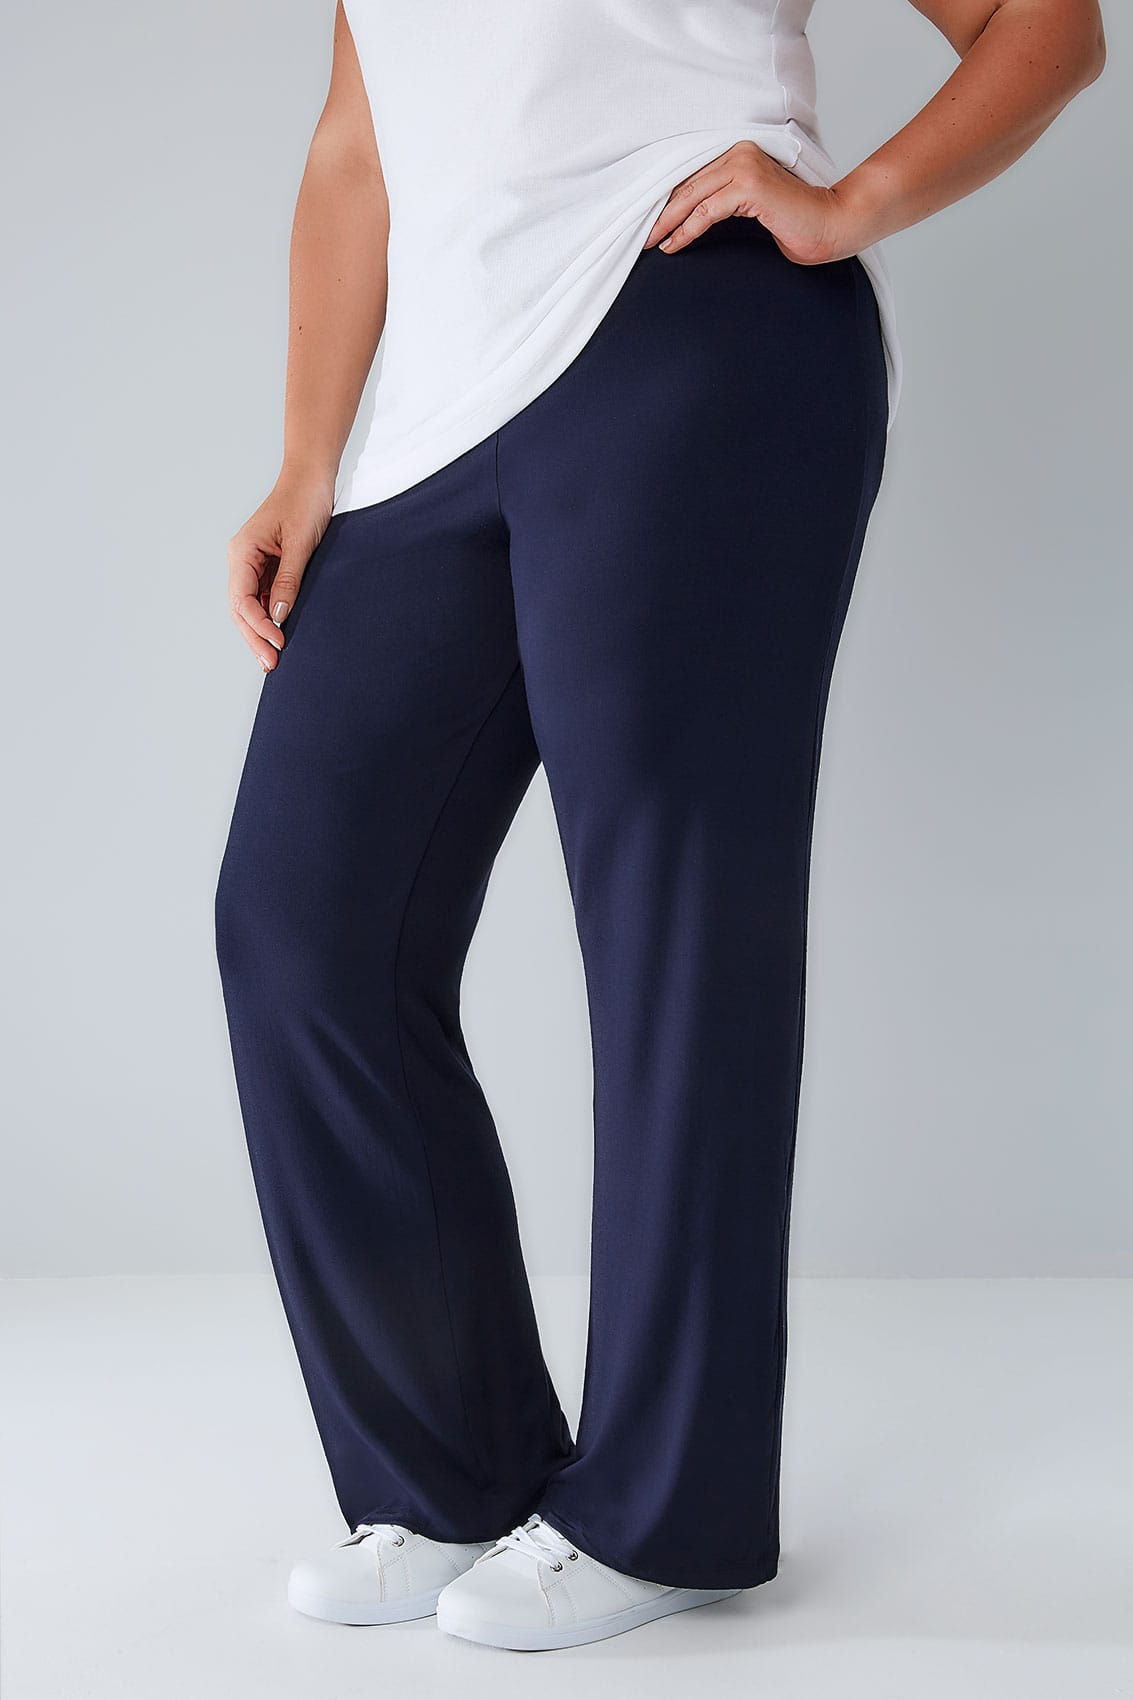 Navy Wide Leg Pull On Stretch Jersey Yoga Trousers Plus -4799